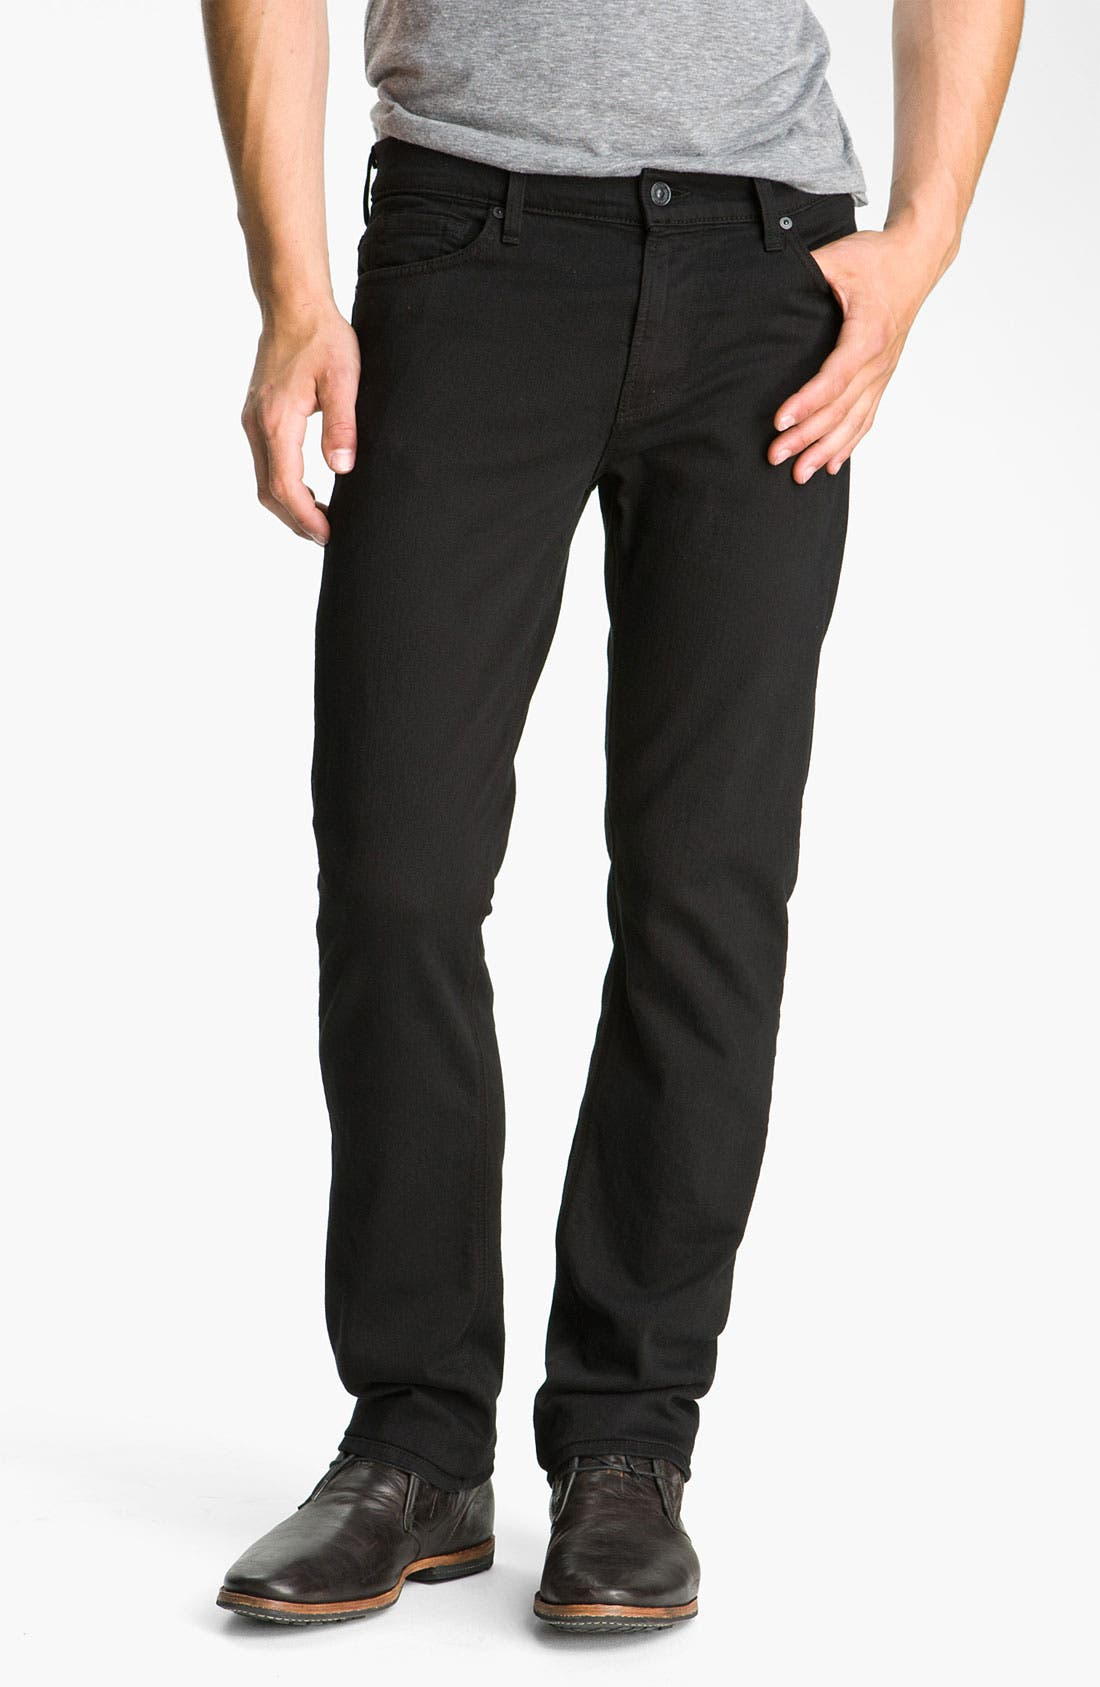 Alternate Image 1 Selected - 7 For All Mankind® 'Slimmy' Slim Fit Jeans (Black Out)